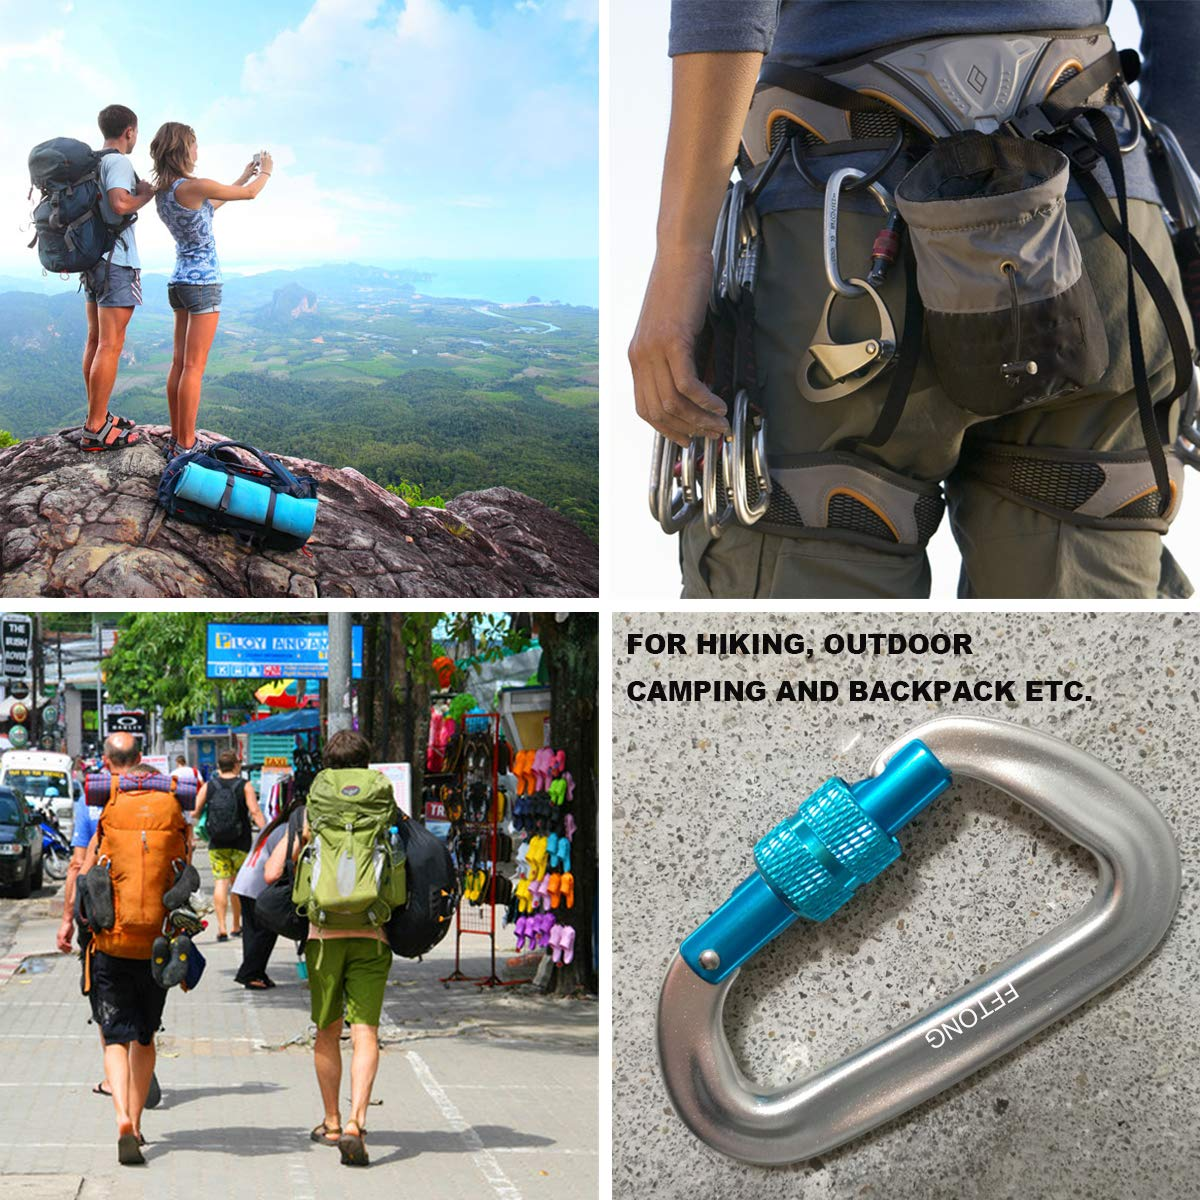 Backpacking Camping Hiking Keychain FTON Locking Carabiners 12KN//2697lbs Aerospace Aluminum Alloy 7075 D Ring Screw Locking Carabiner Clips for Hammock Dog Leash /& Harness etc.